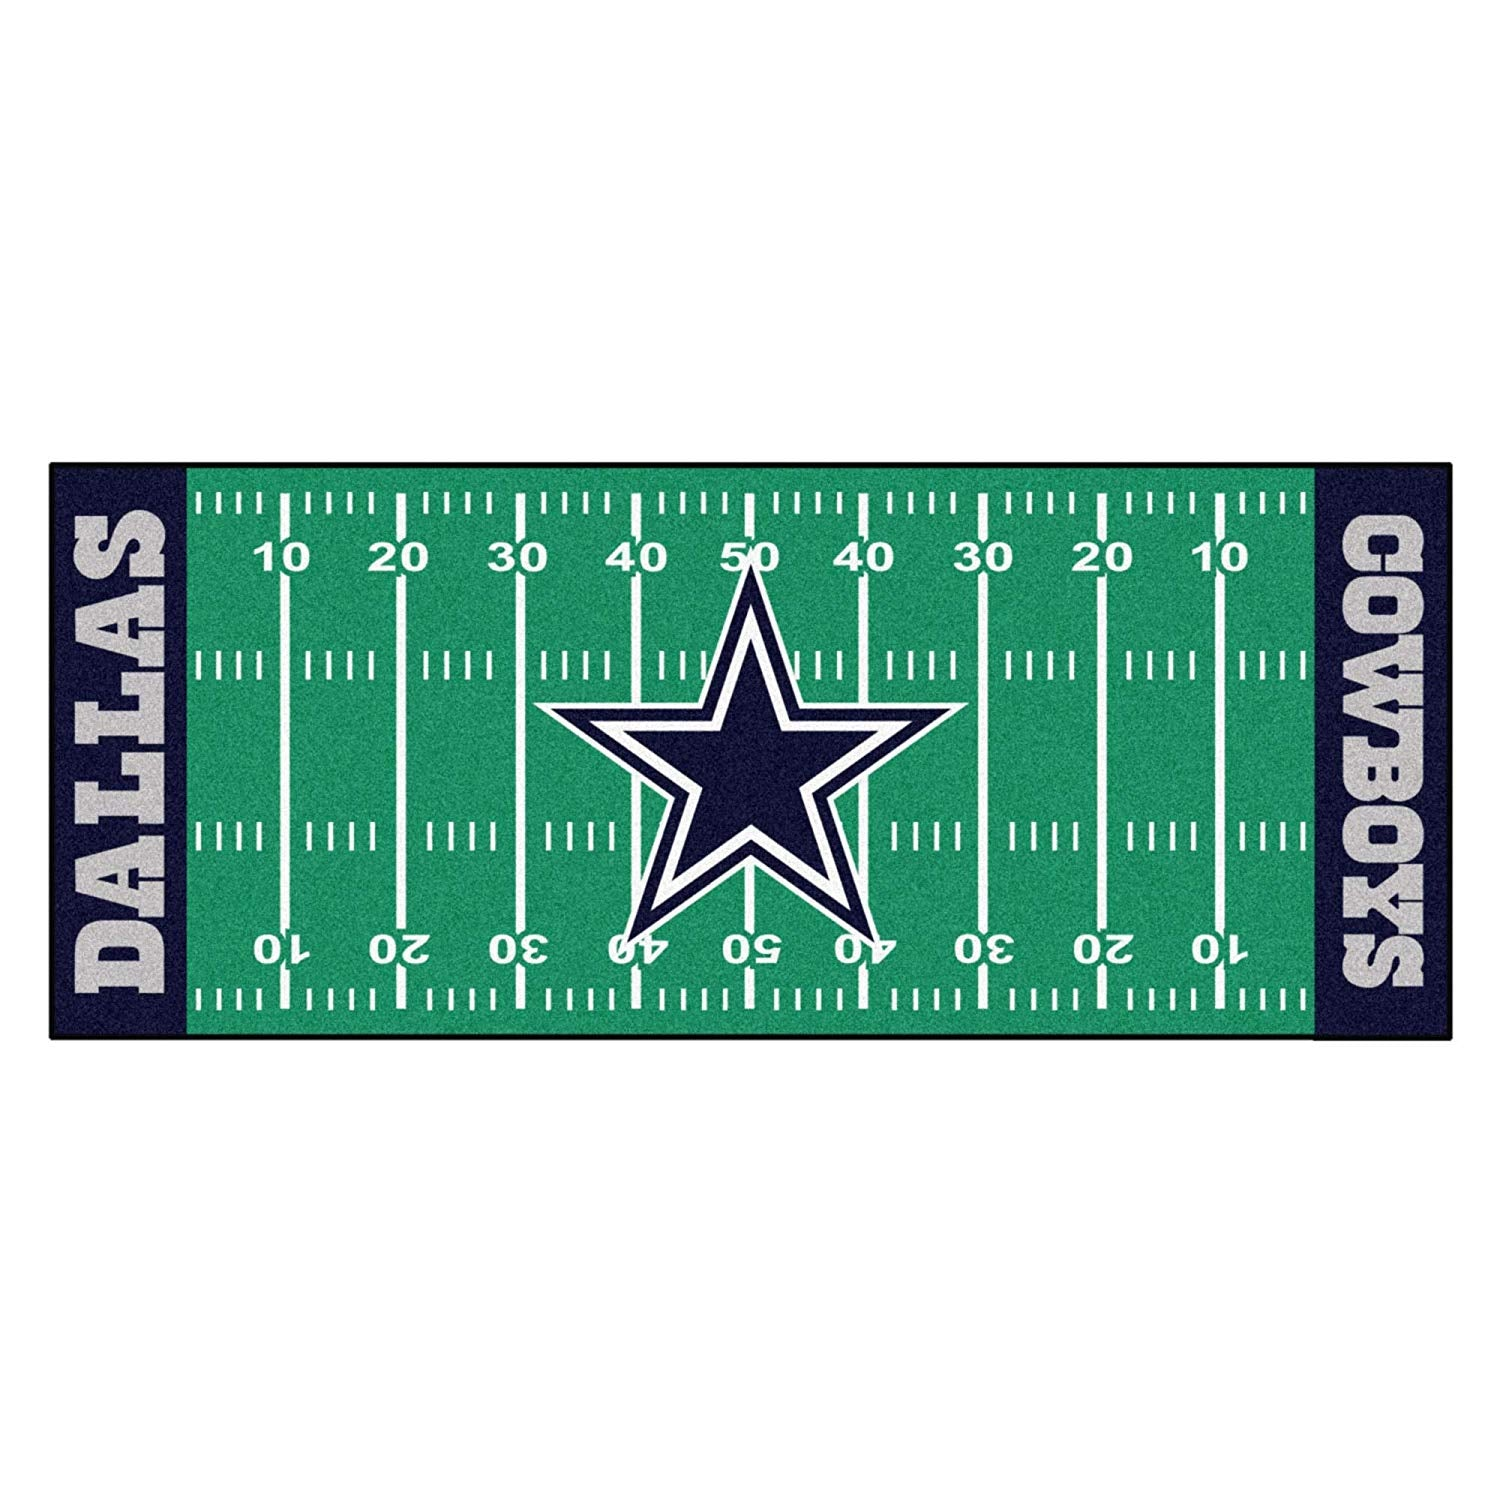 30x72 NFL Cowboys Rug Football Field Runner xl Long Yoga Mat Sports Area Rug Boys Bedroom Living Room Bathroom Rugs Runner Floor Carpet Athletic Game